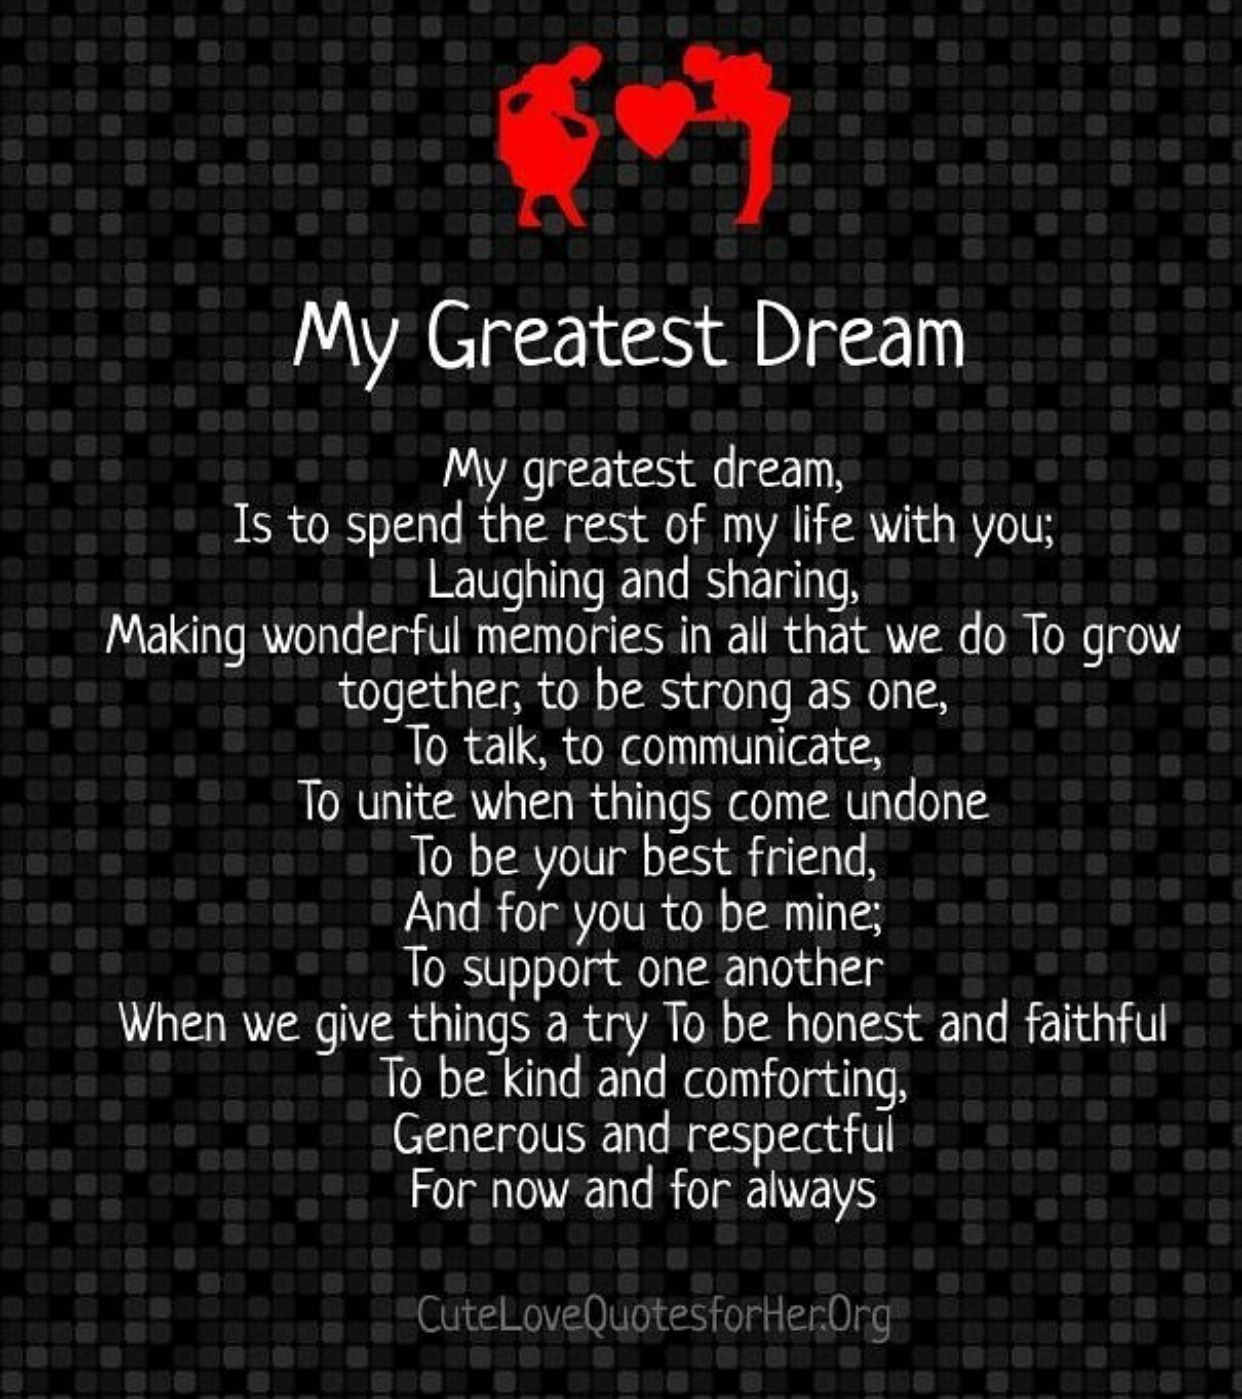 Pin By Boss On Home Decor Relationship Poems Troubled Relationship Soulmate Love Quotes